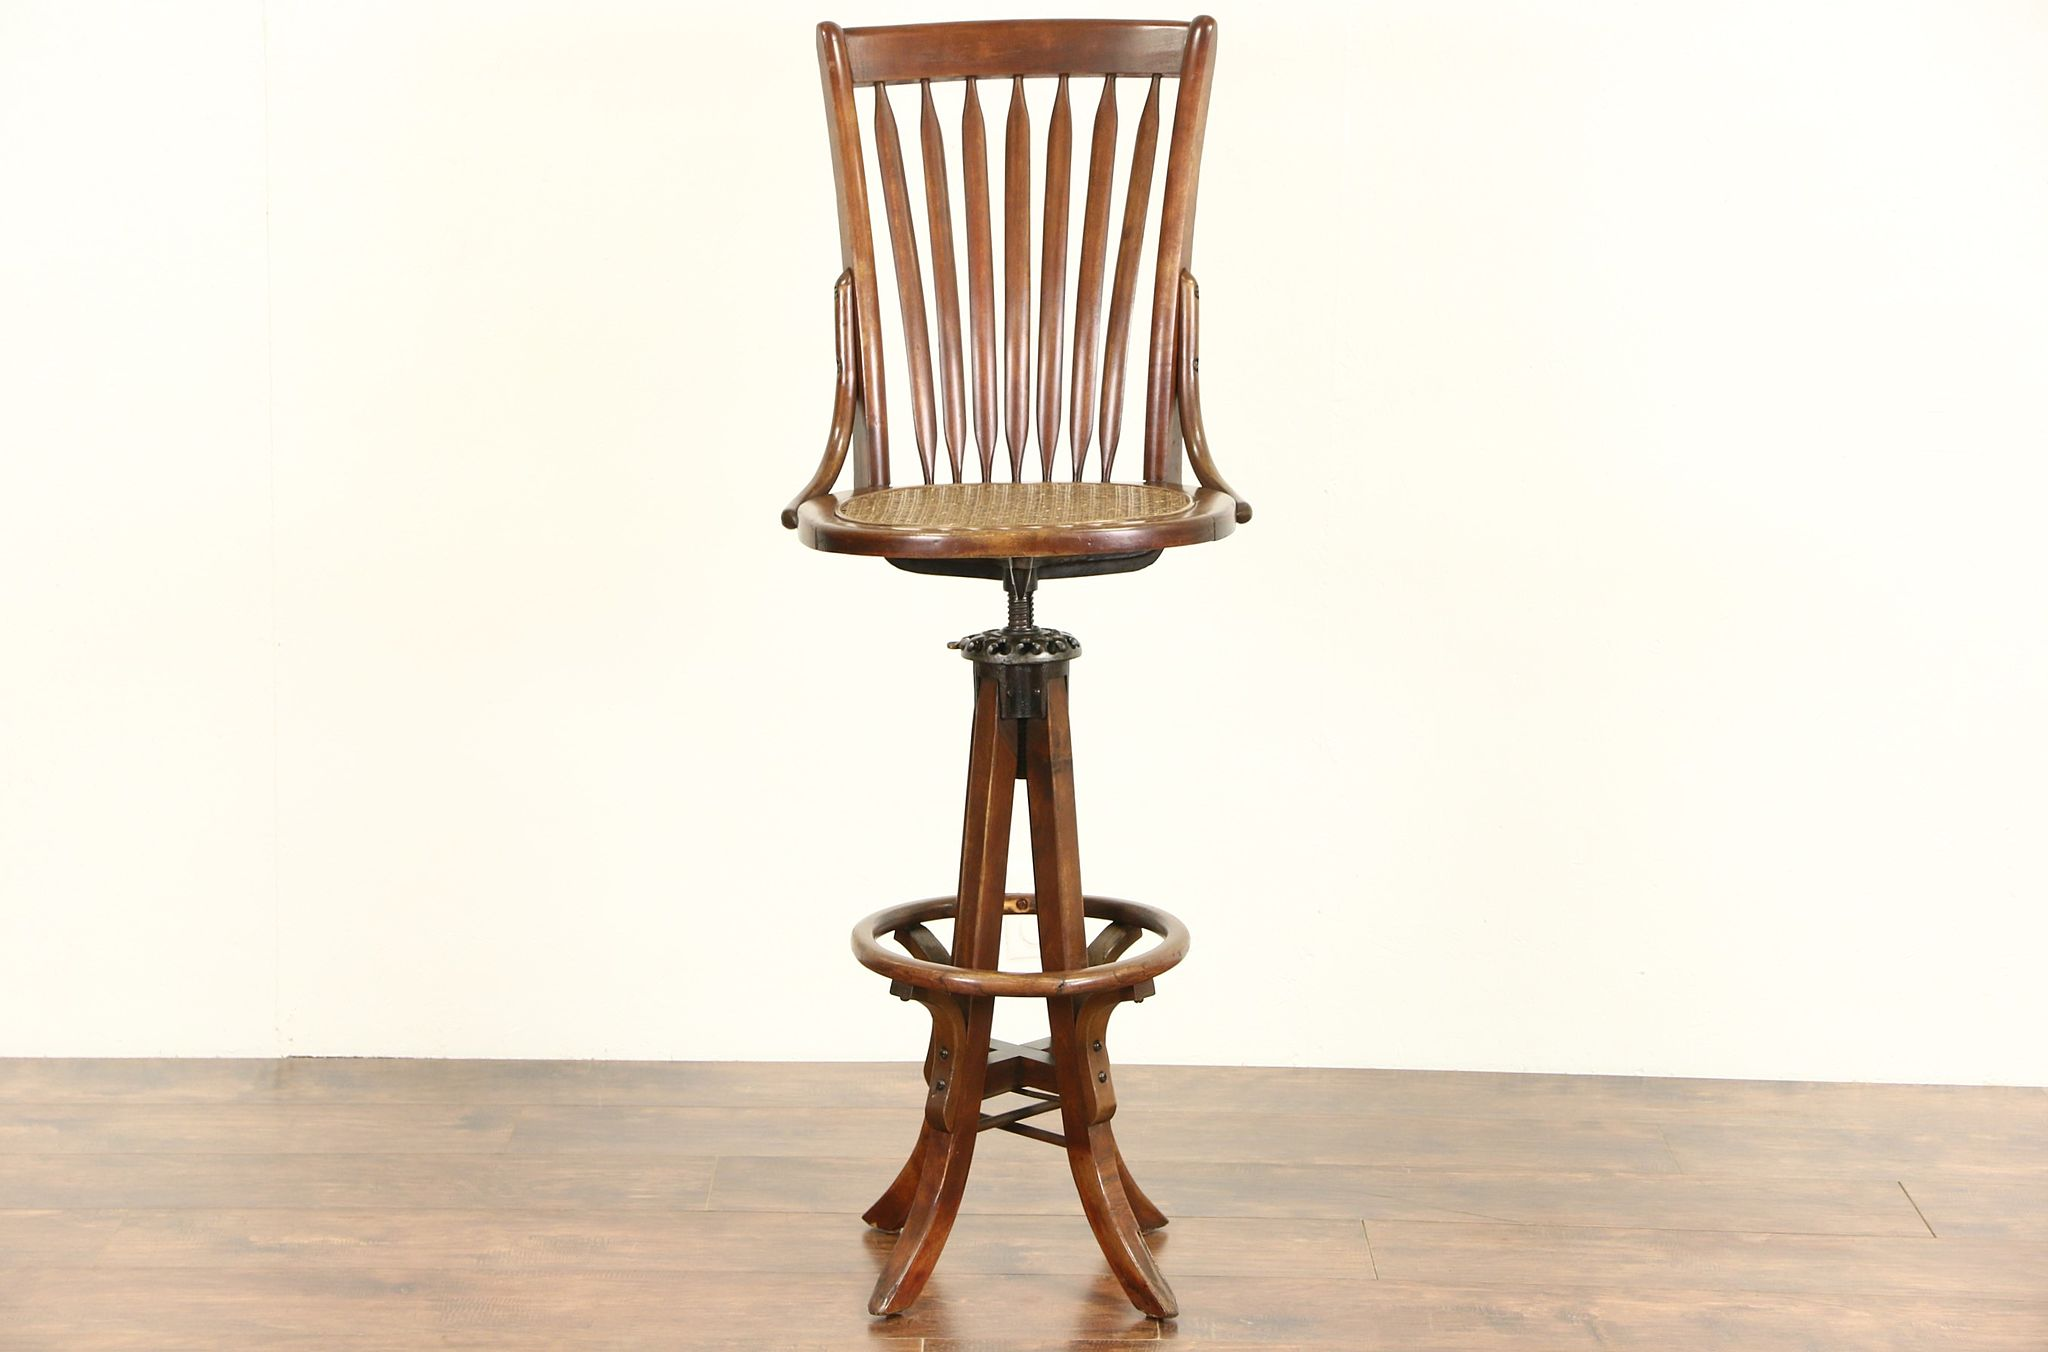 Tremendous Drafting Architect Or Artist Antique Swivel Stool With Back Milwaukee Pat 1914 Gamerscity Chair Design For Home Gamerscityorg